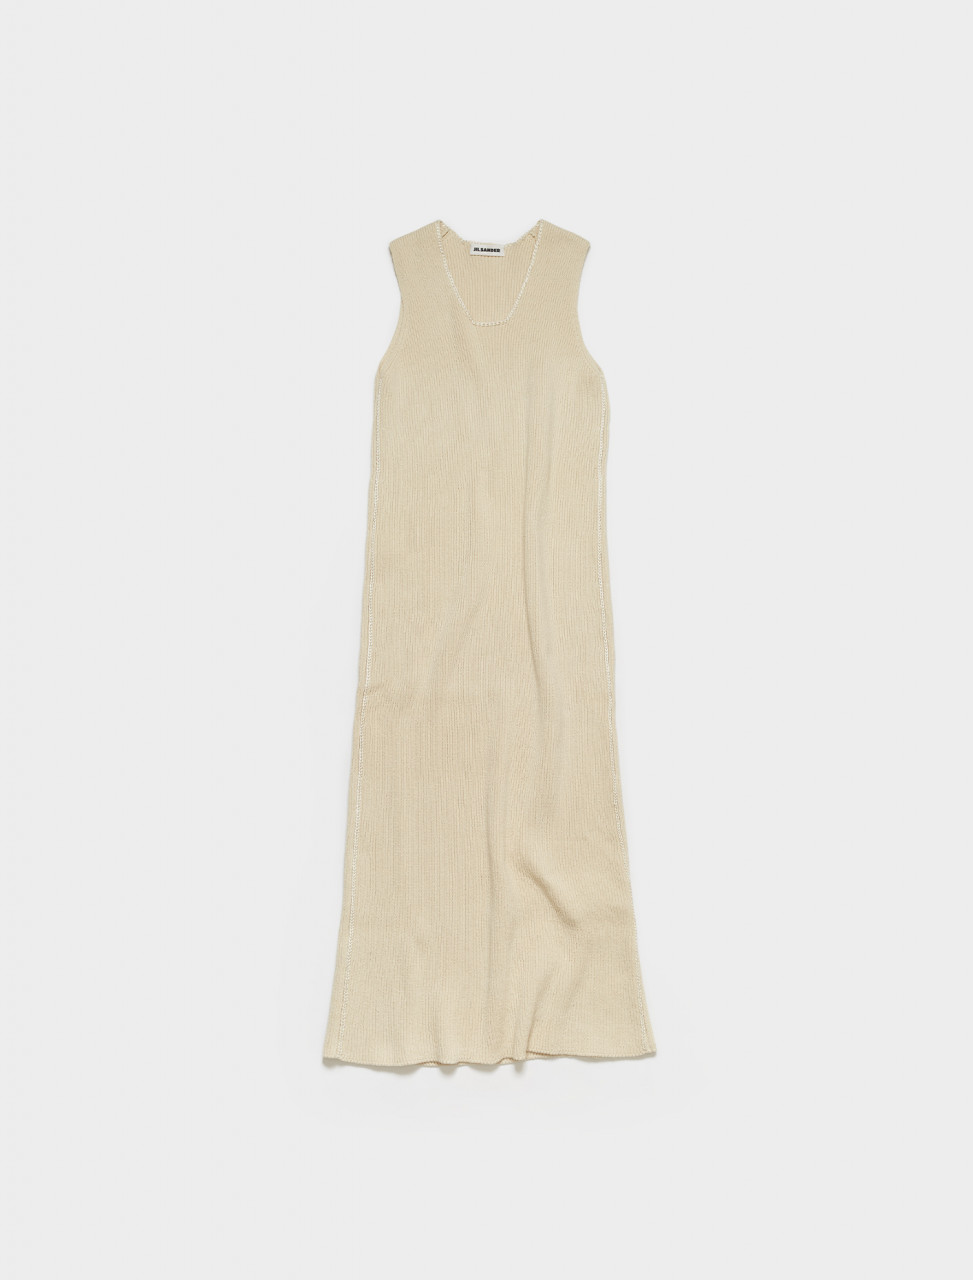 JSPS751066-WSY25058-105 JIL SANDER LONG KNIT DRESS BEIGE